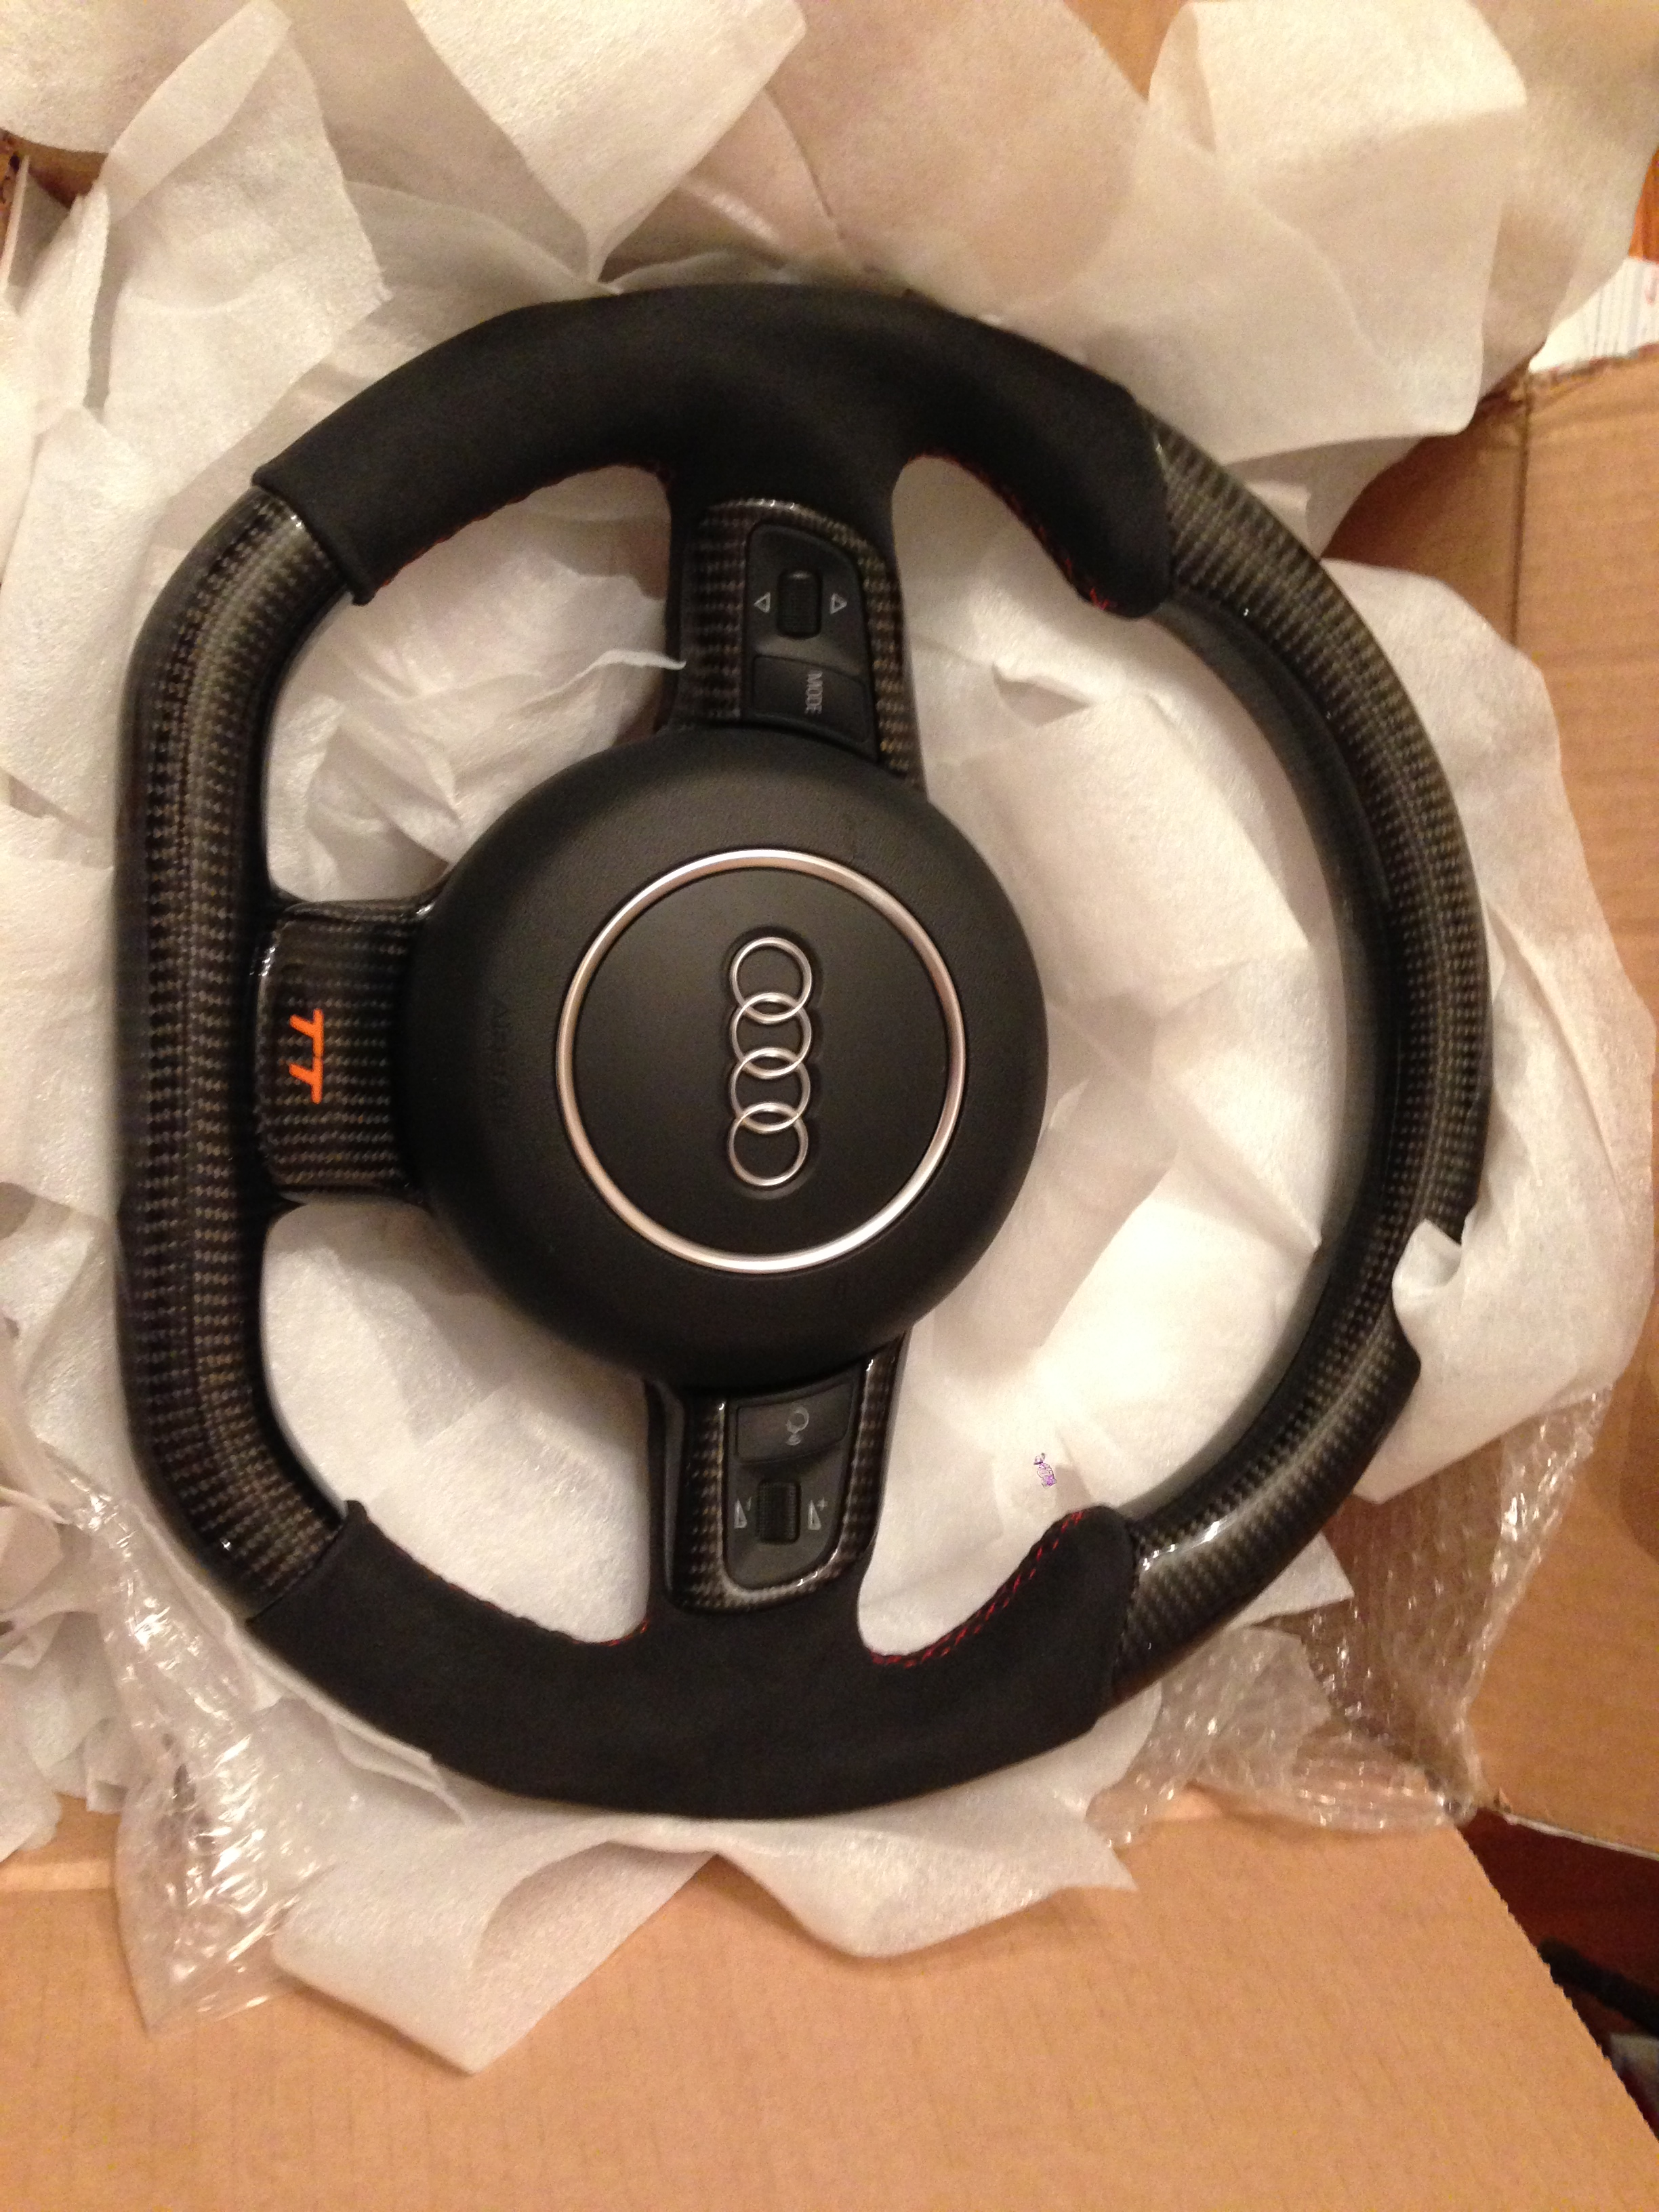 sale by top shots audi sportback for on we new car specs expect prices magazine ceramic being discs spy brake wheels photos to tested